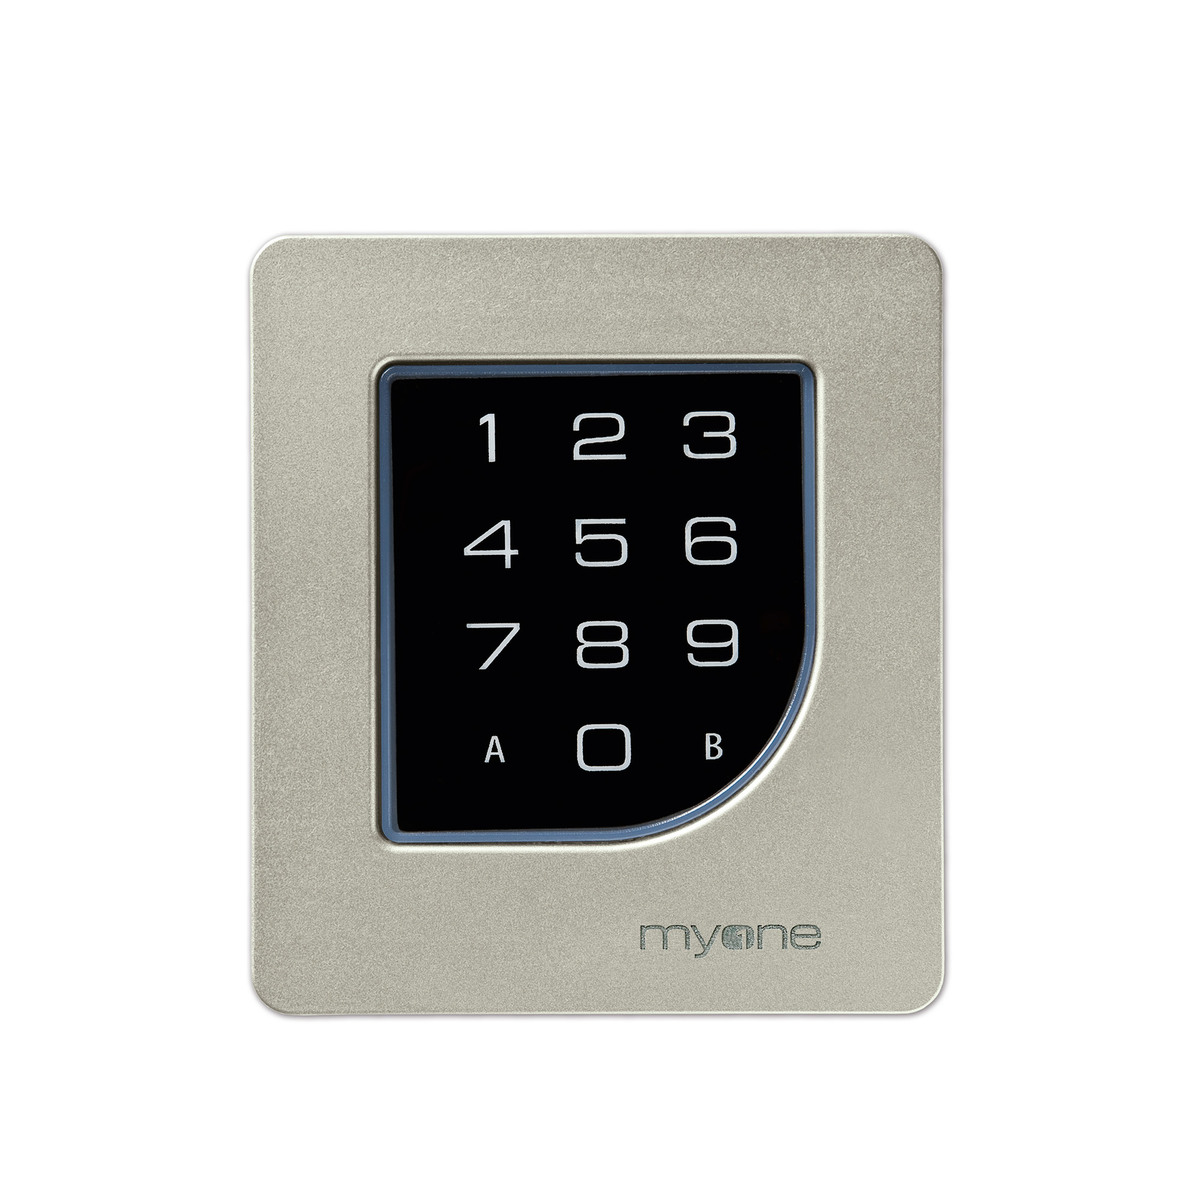 Myone Wired digital key pad GDR Architectural